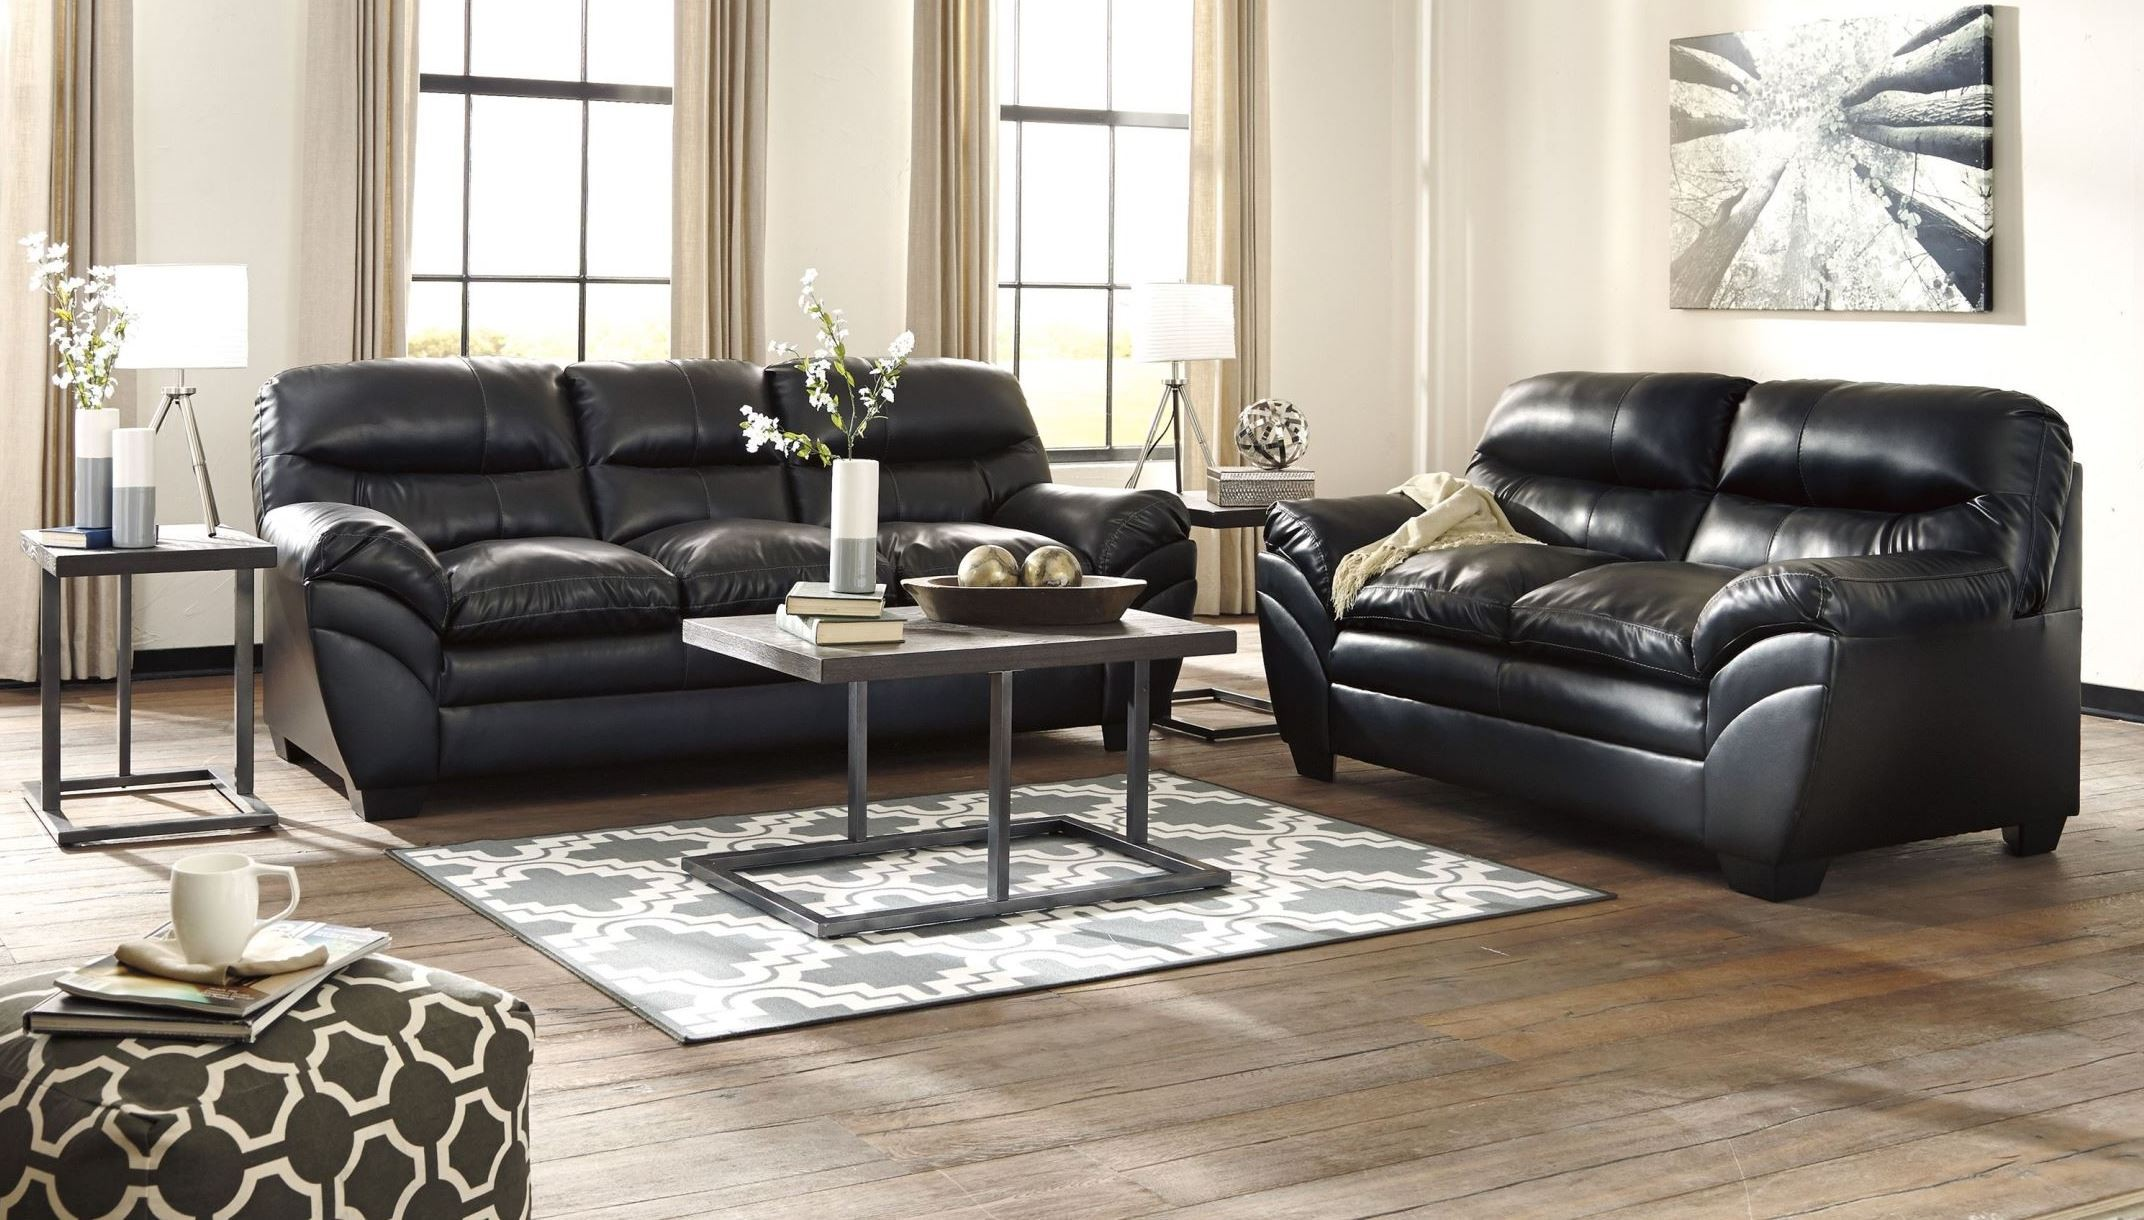 Tassler Durablend Black Living Room Set From Ashley